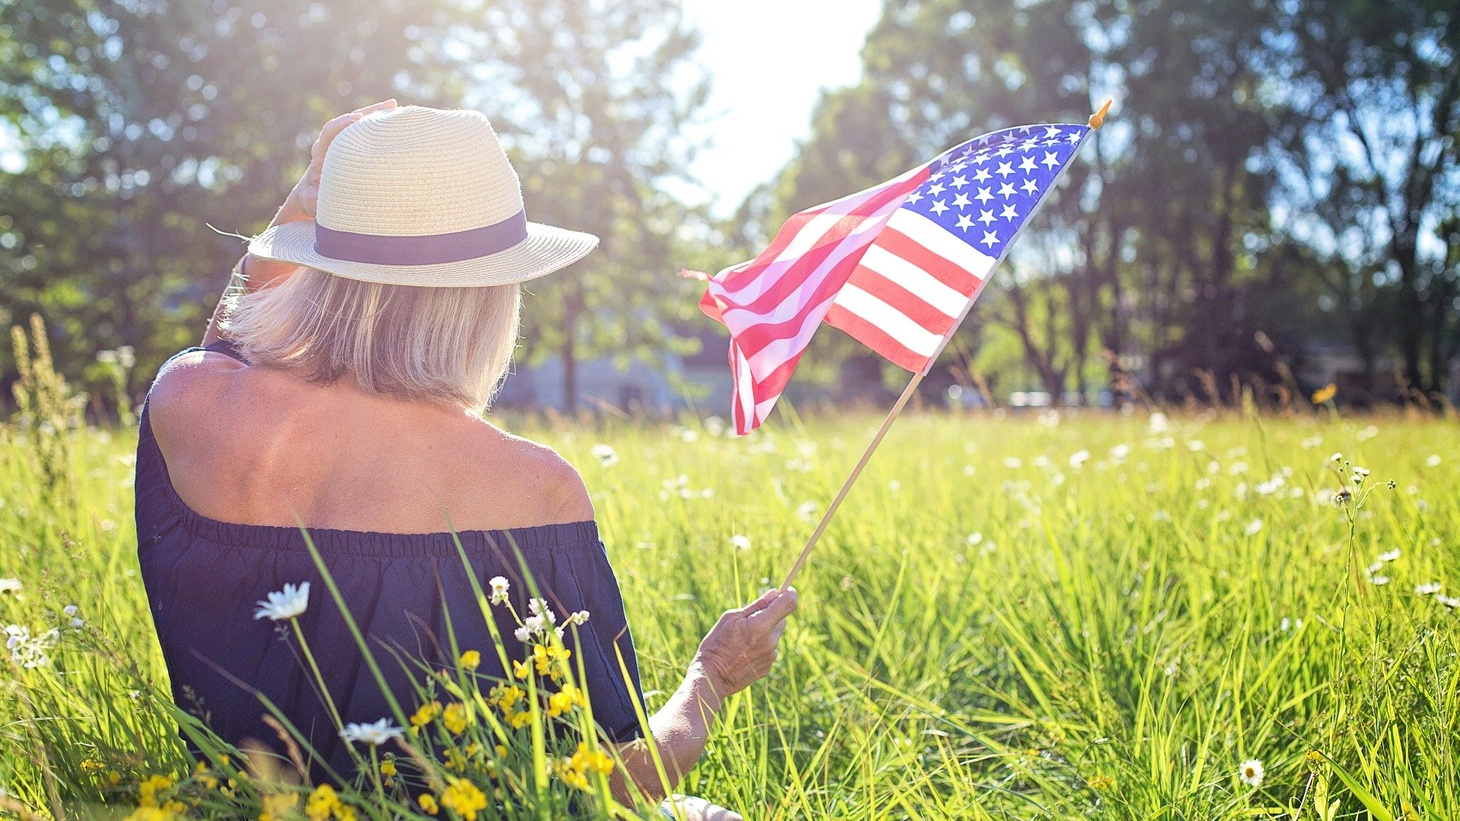 Health officials are imploring people to avoid Fourth of July gatherings with friends and family this weekend.